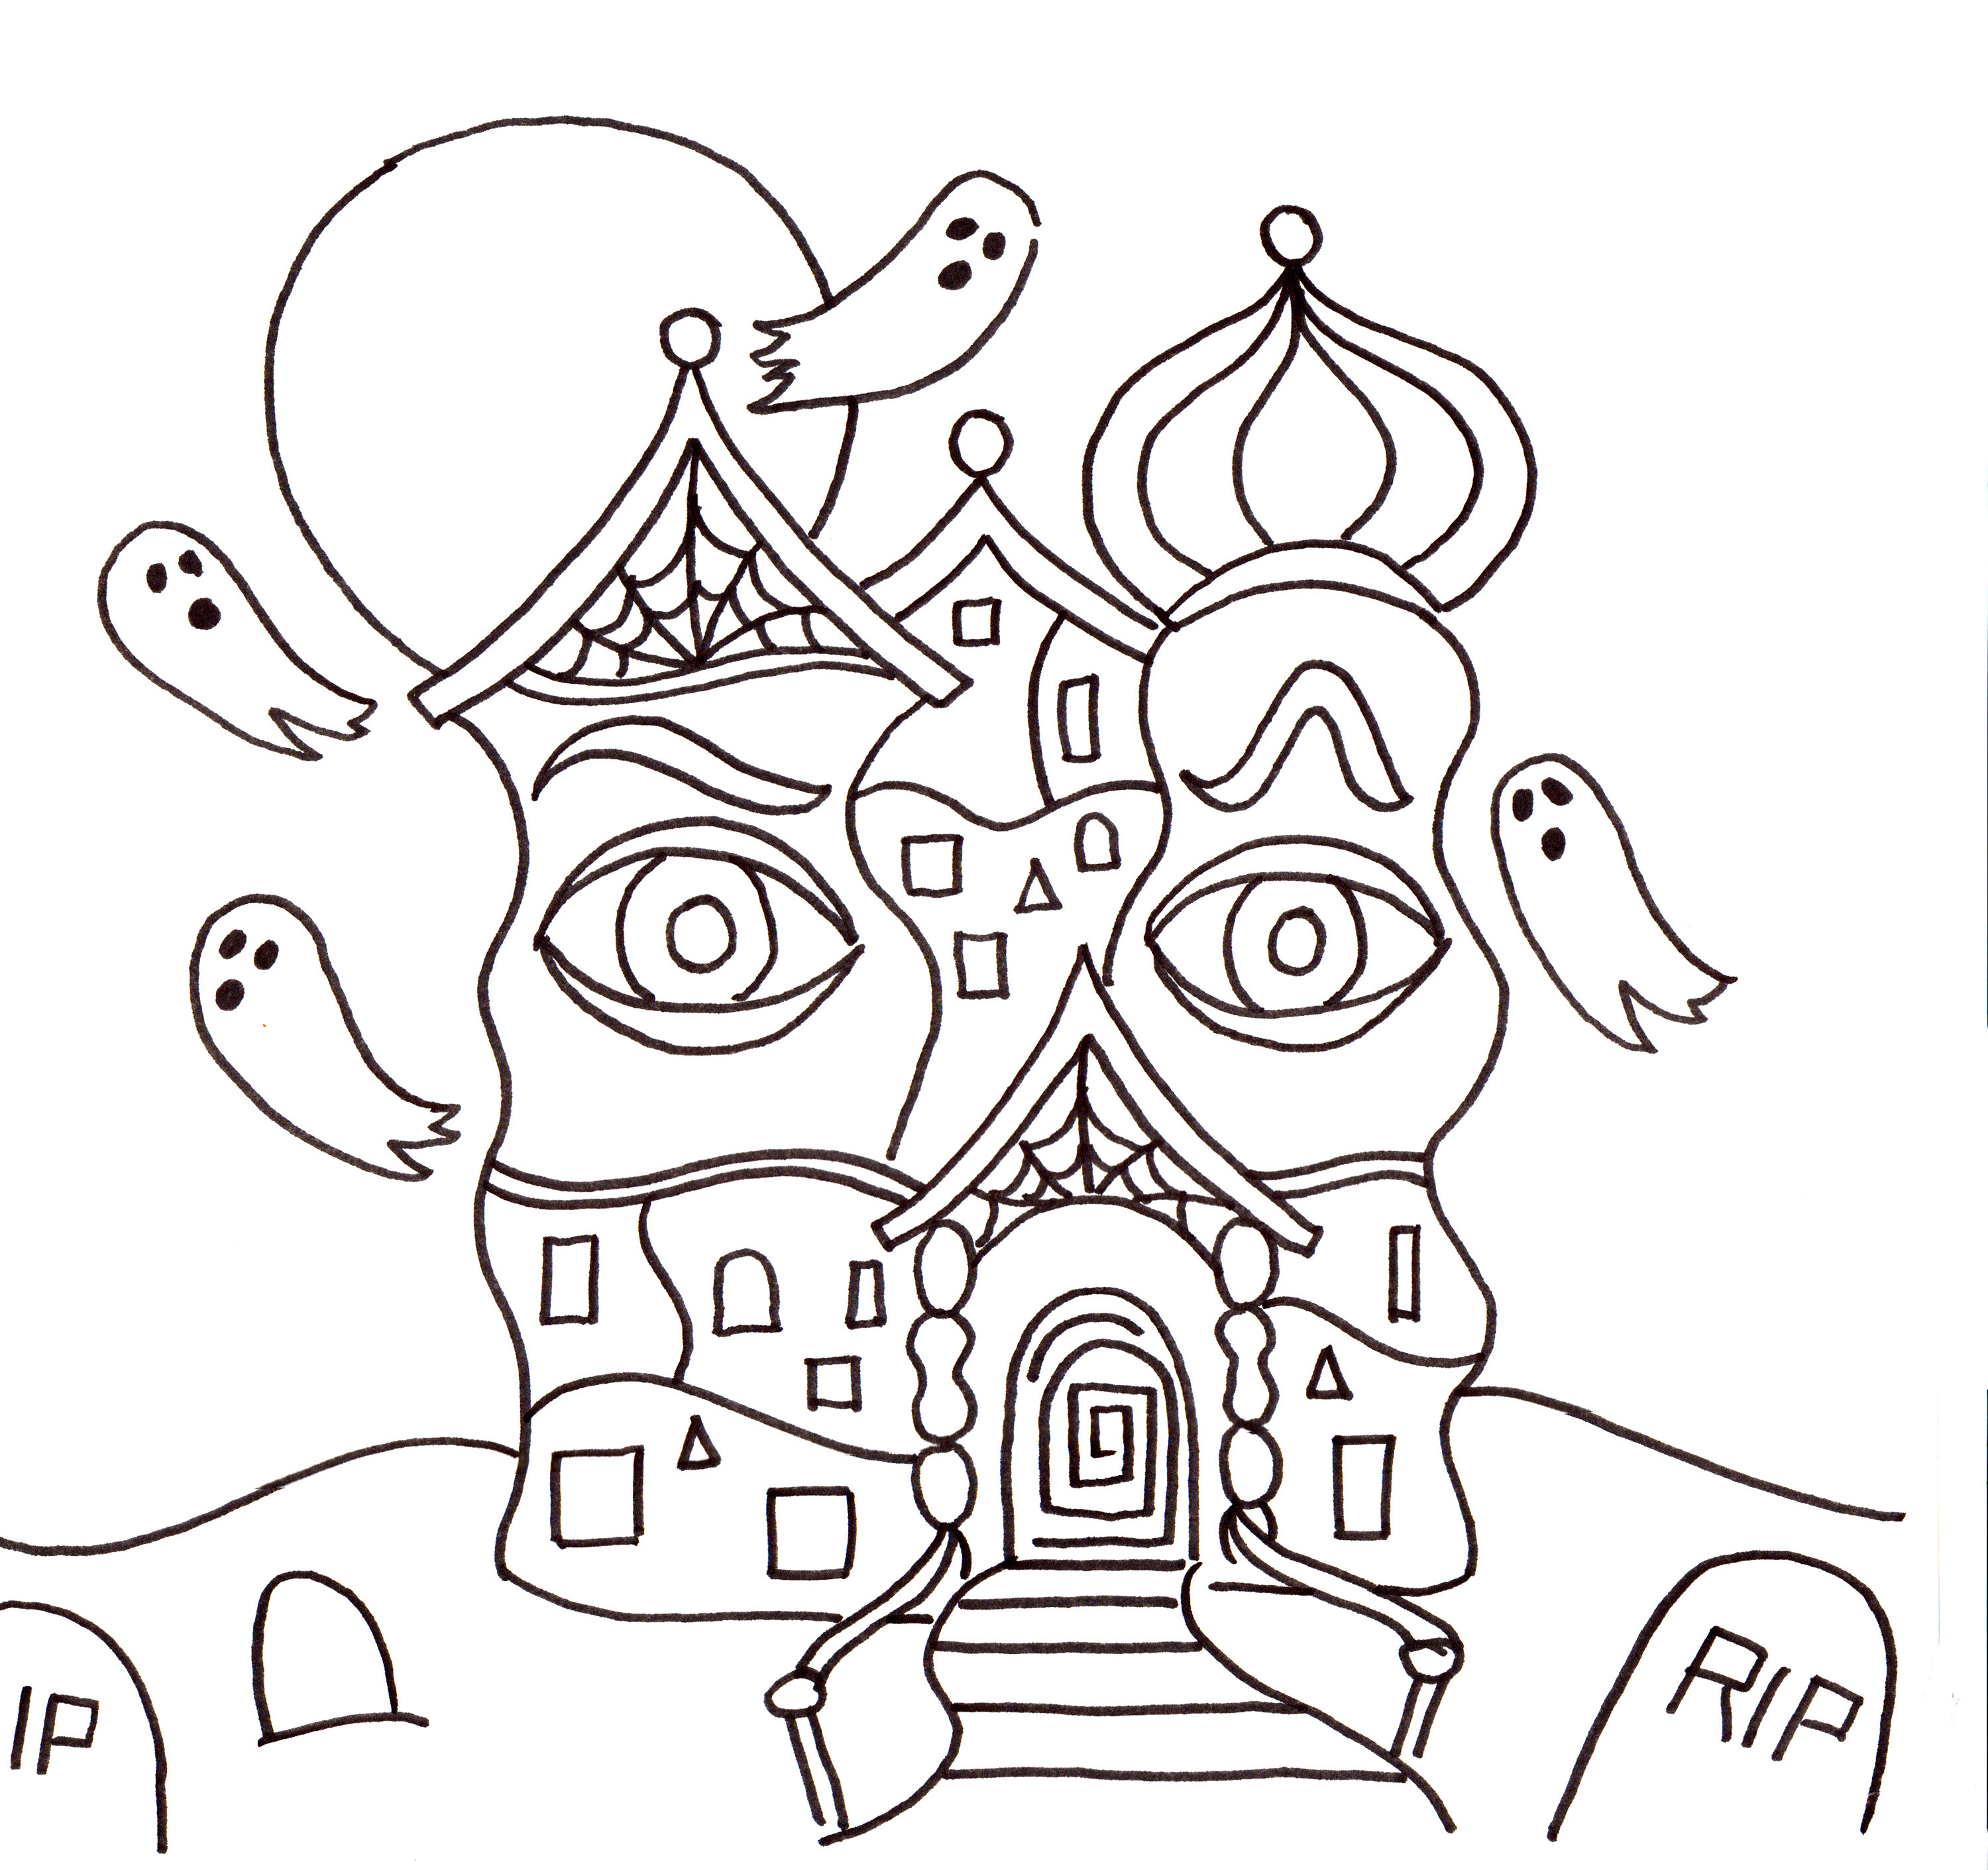 anic shapes drawing at getdrawings free for personal use Best Attorney Resume 3000x2822 halloween art lesson